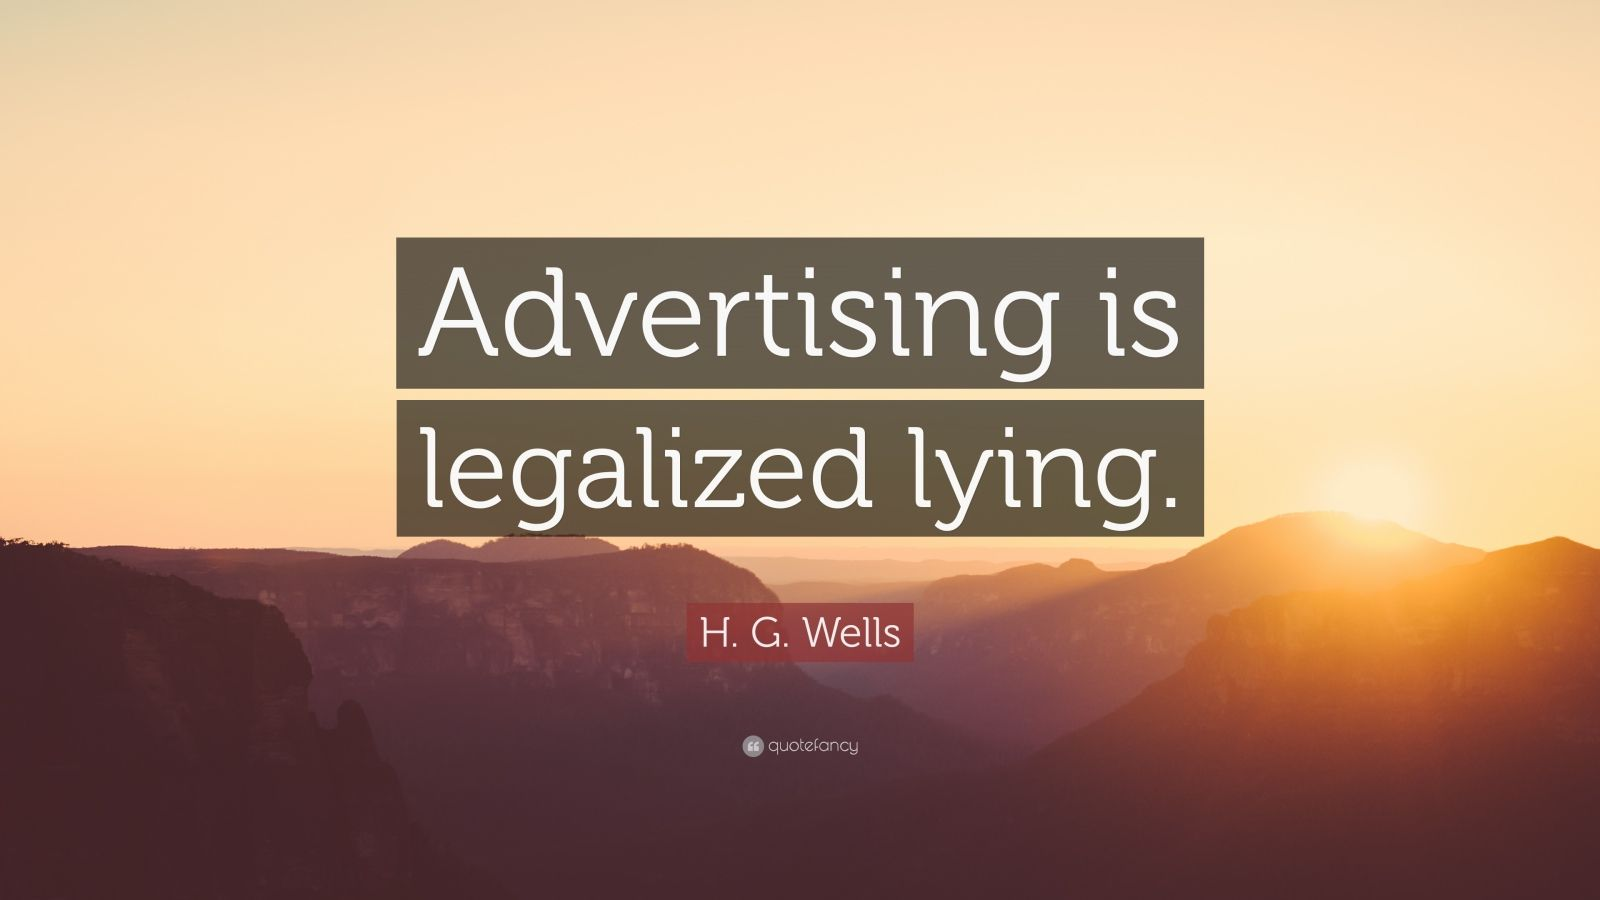 advertising is legalized lying Advertising is legalized form of lying 100% yes - advertising is a legal lying introduction most advertisements and advertisers make totally false and tall claims, which is far from reality.